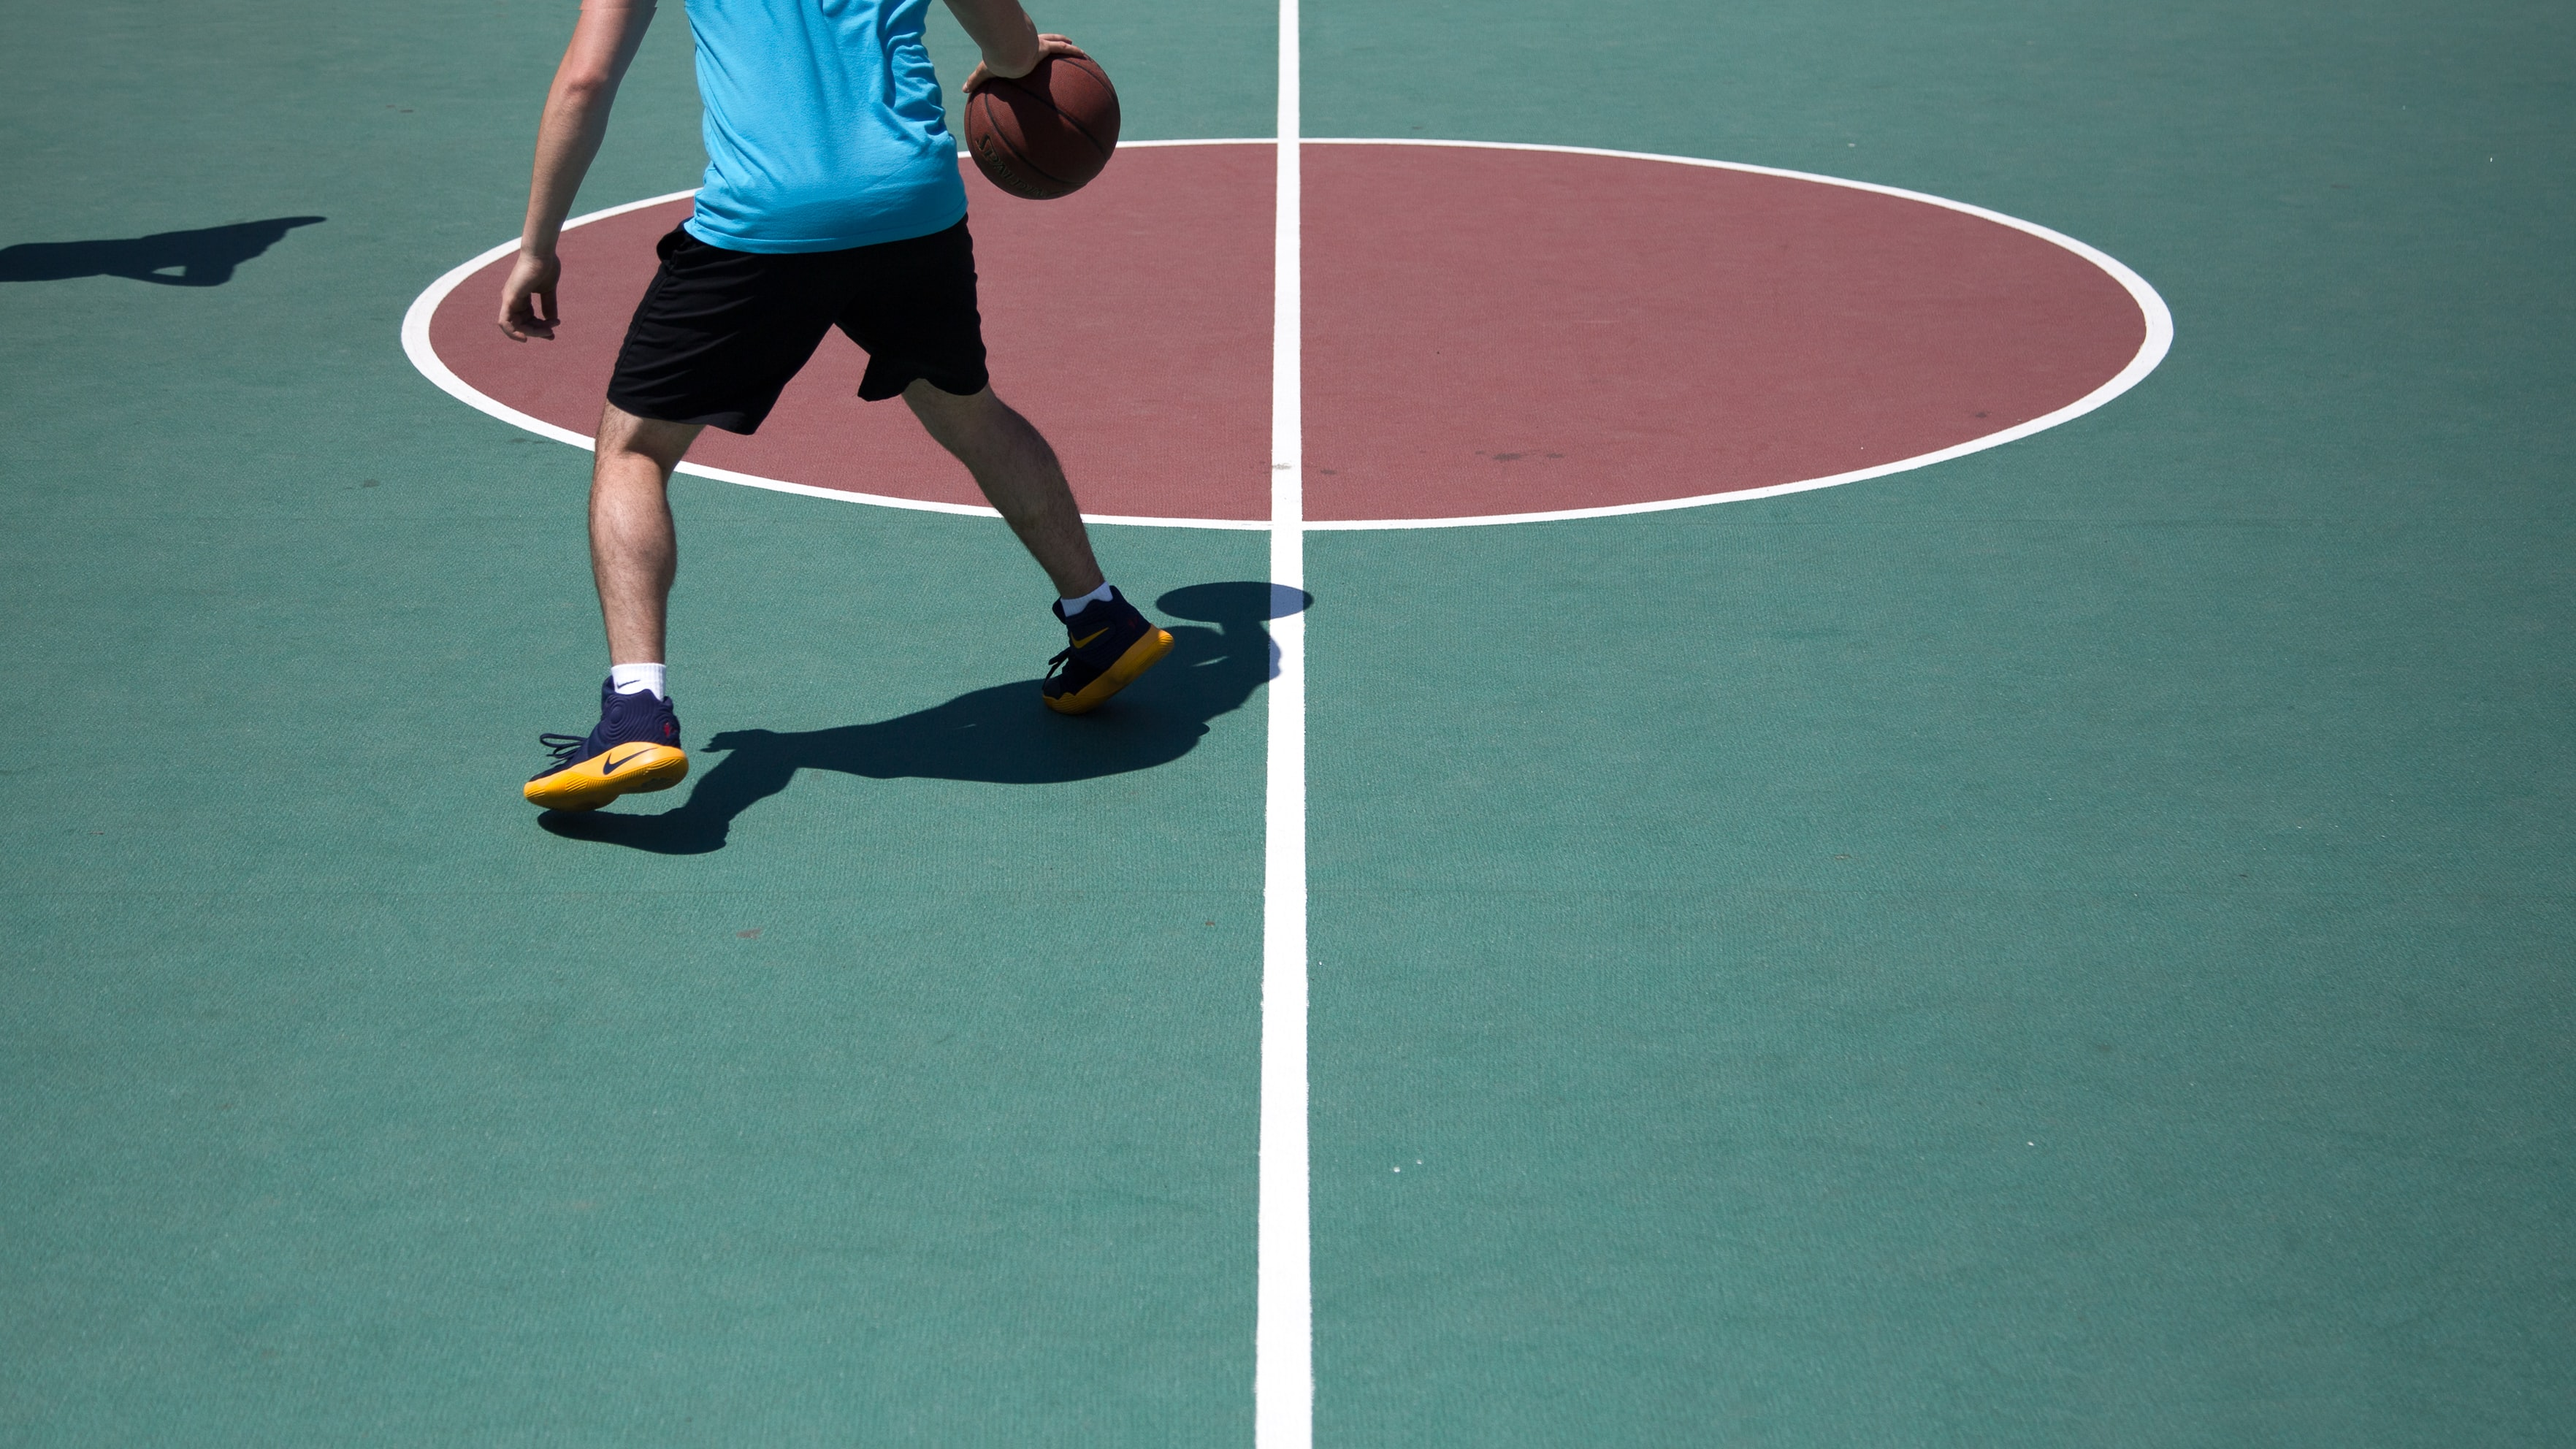 man dribbling ball on court